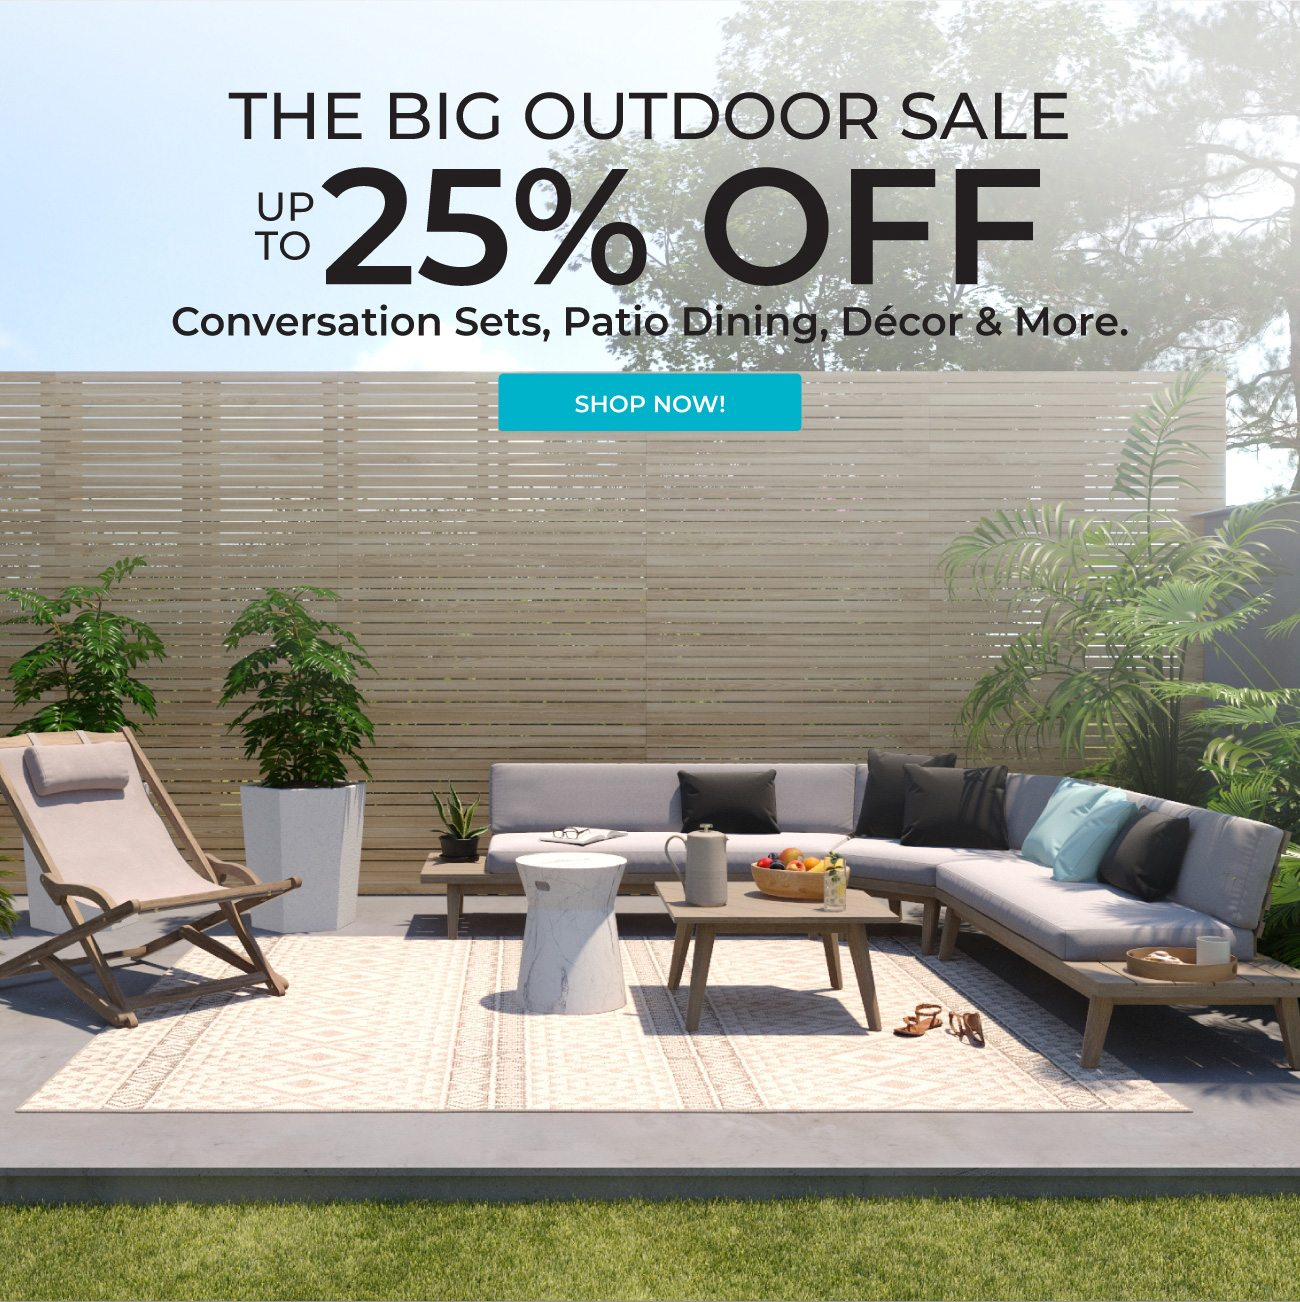 The Big Outdoor Sale | Up to 25% Off | Shop Now